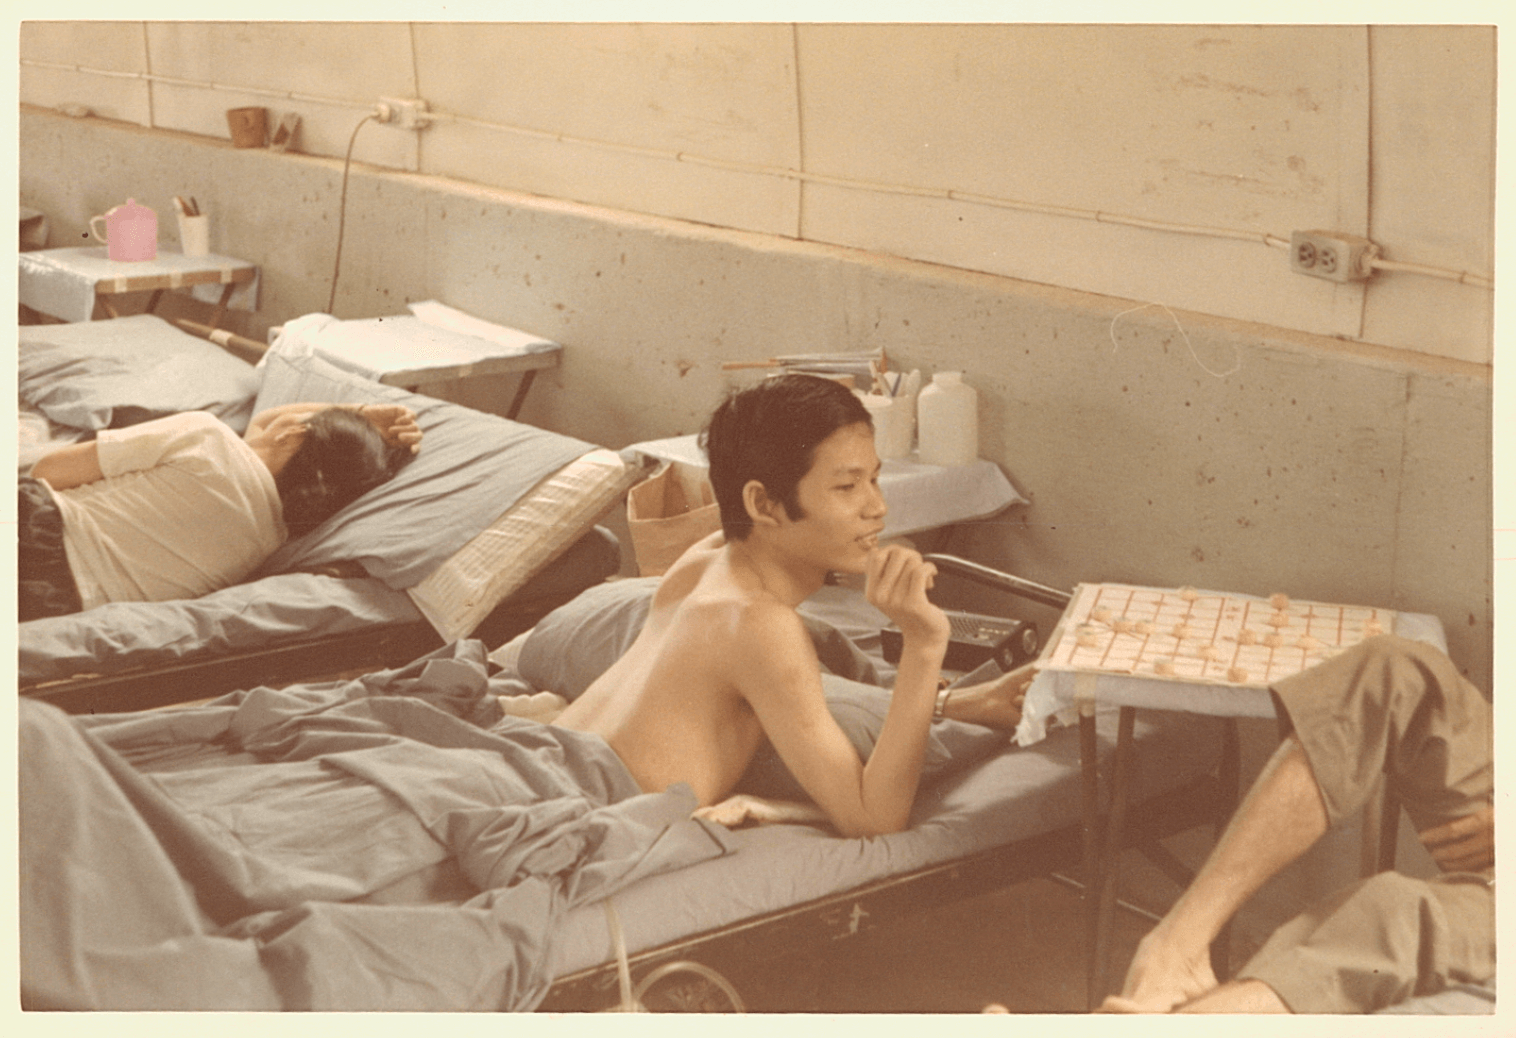 An Asian boy recuperates from his hospital bed, laying on his stomach.